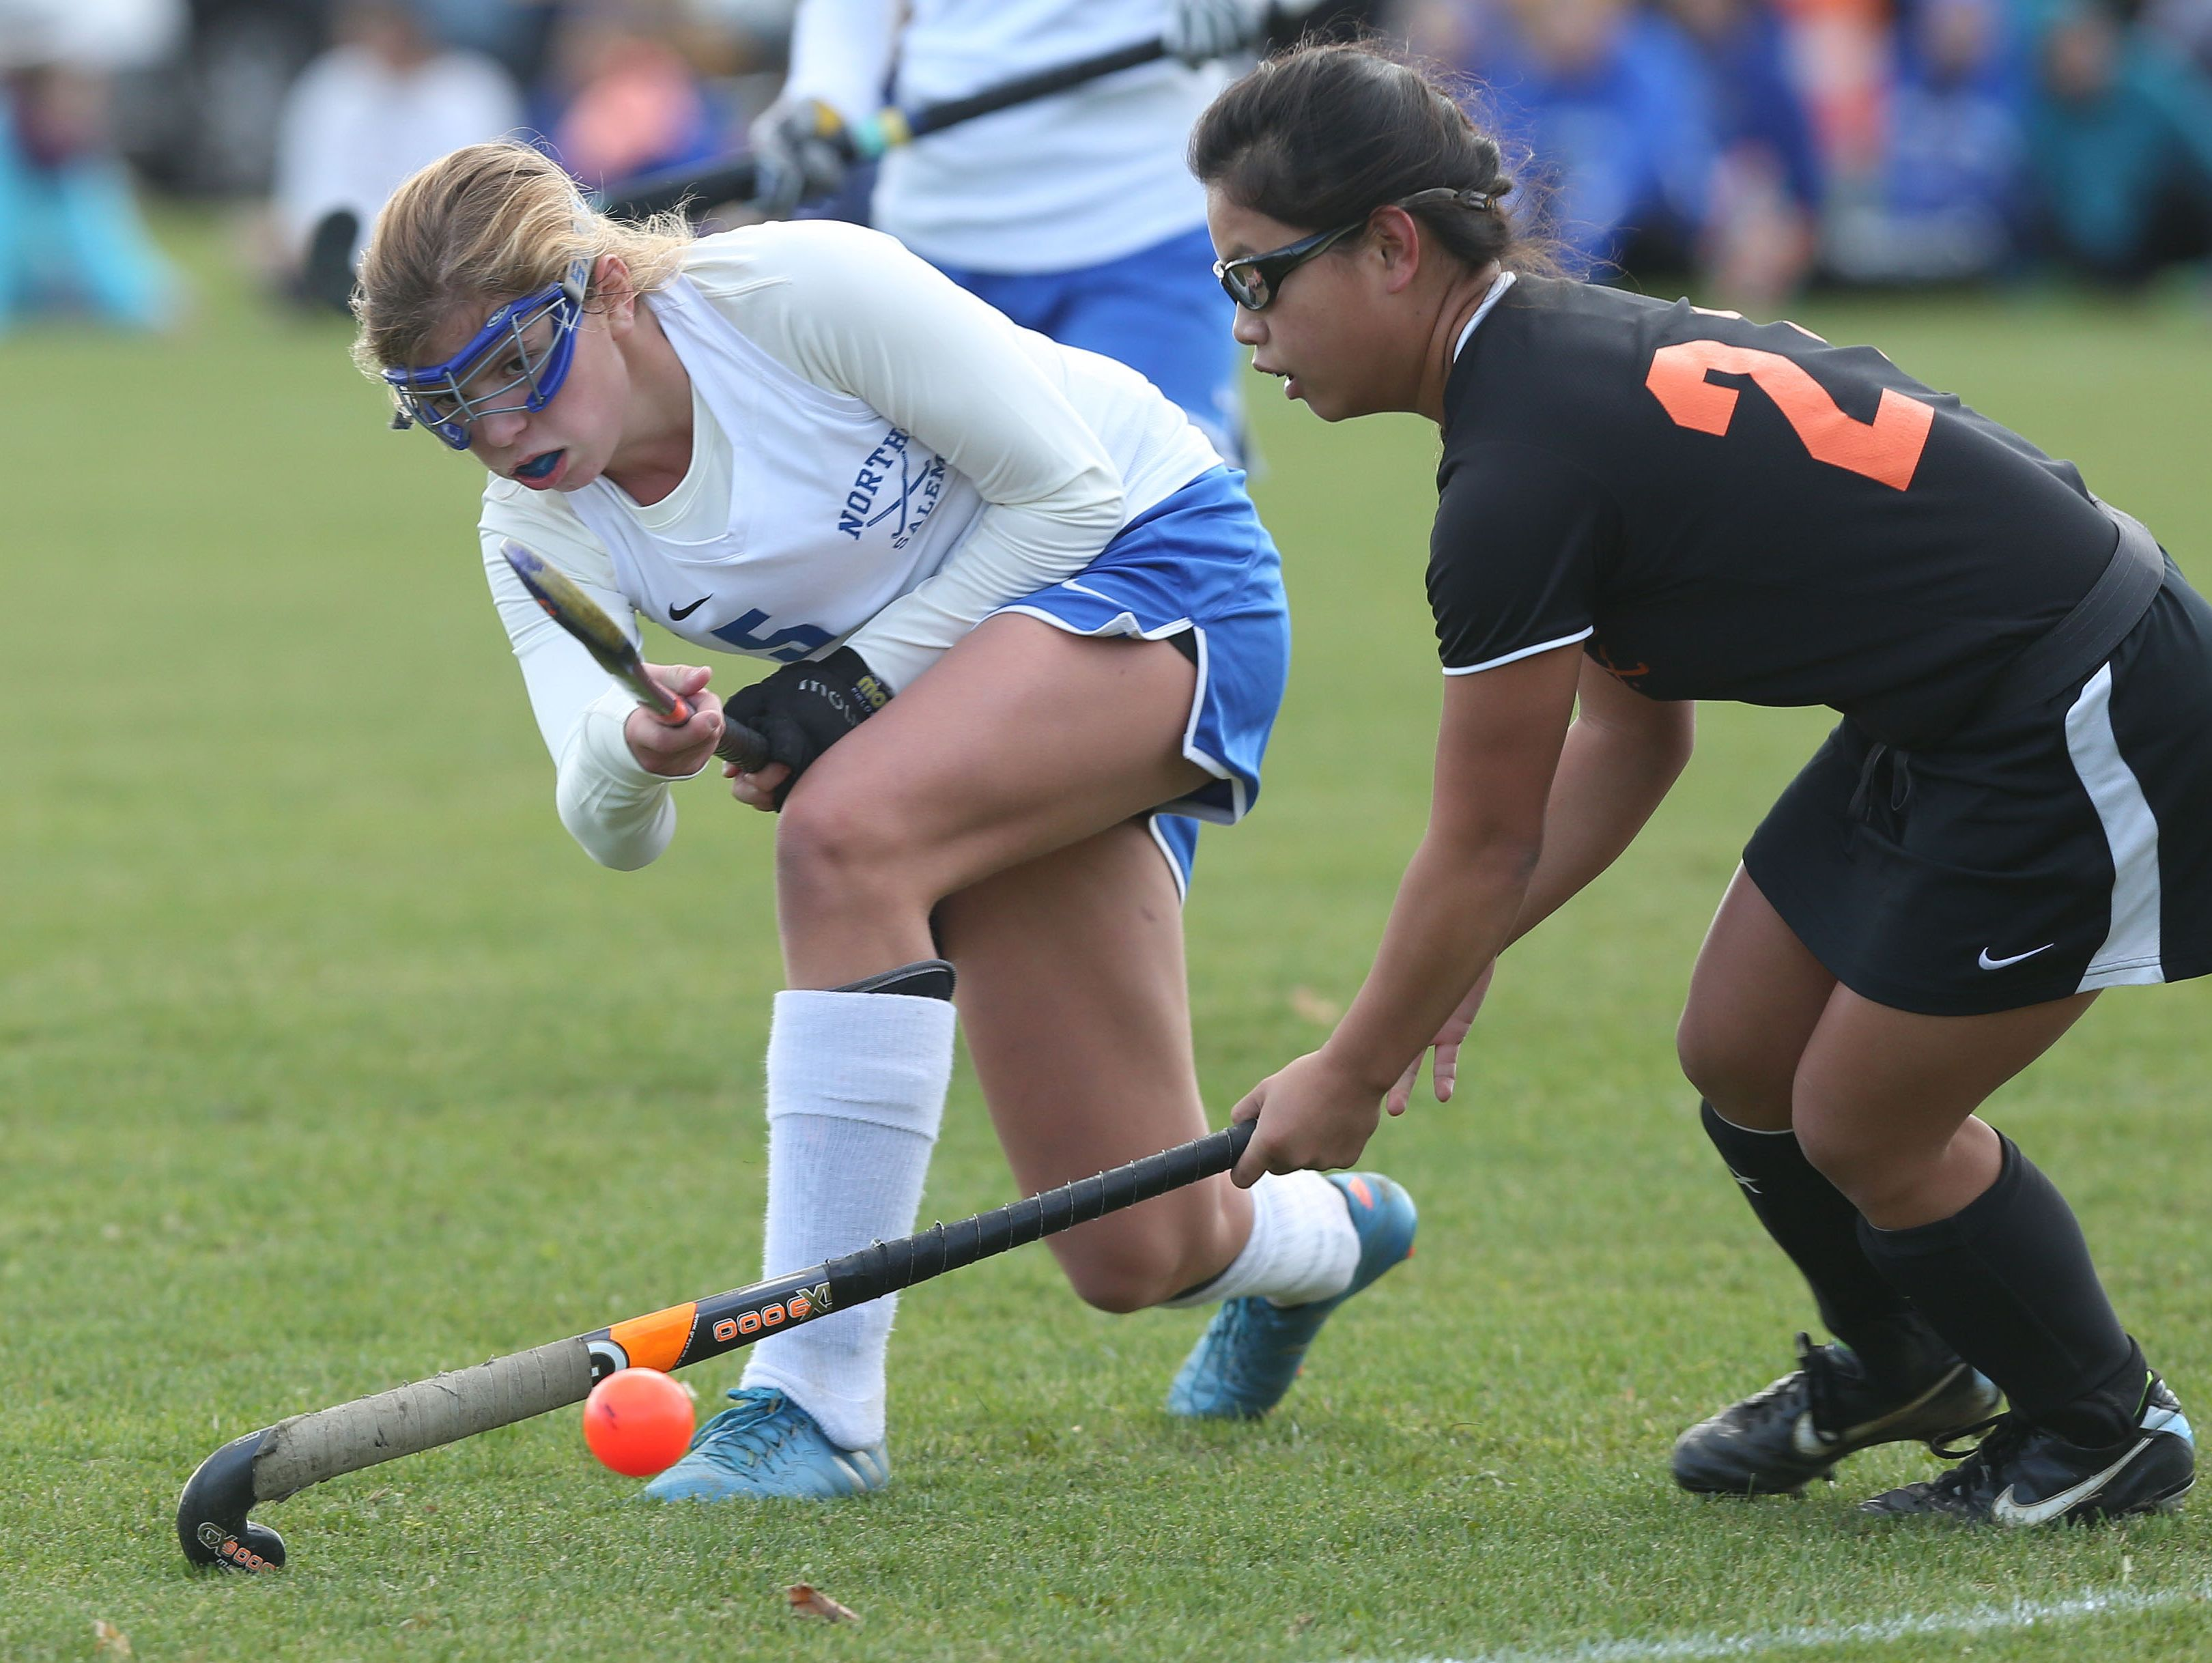 From left, North Salem's Allison Eberhardt (15) moves the ball away from Pawling's Carly McGrath (21) during field hockey action at North Salem High School Oct. 25, 2016. North Salem won the game 1-0.